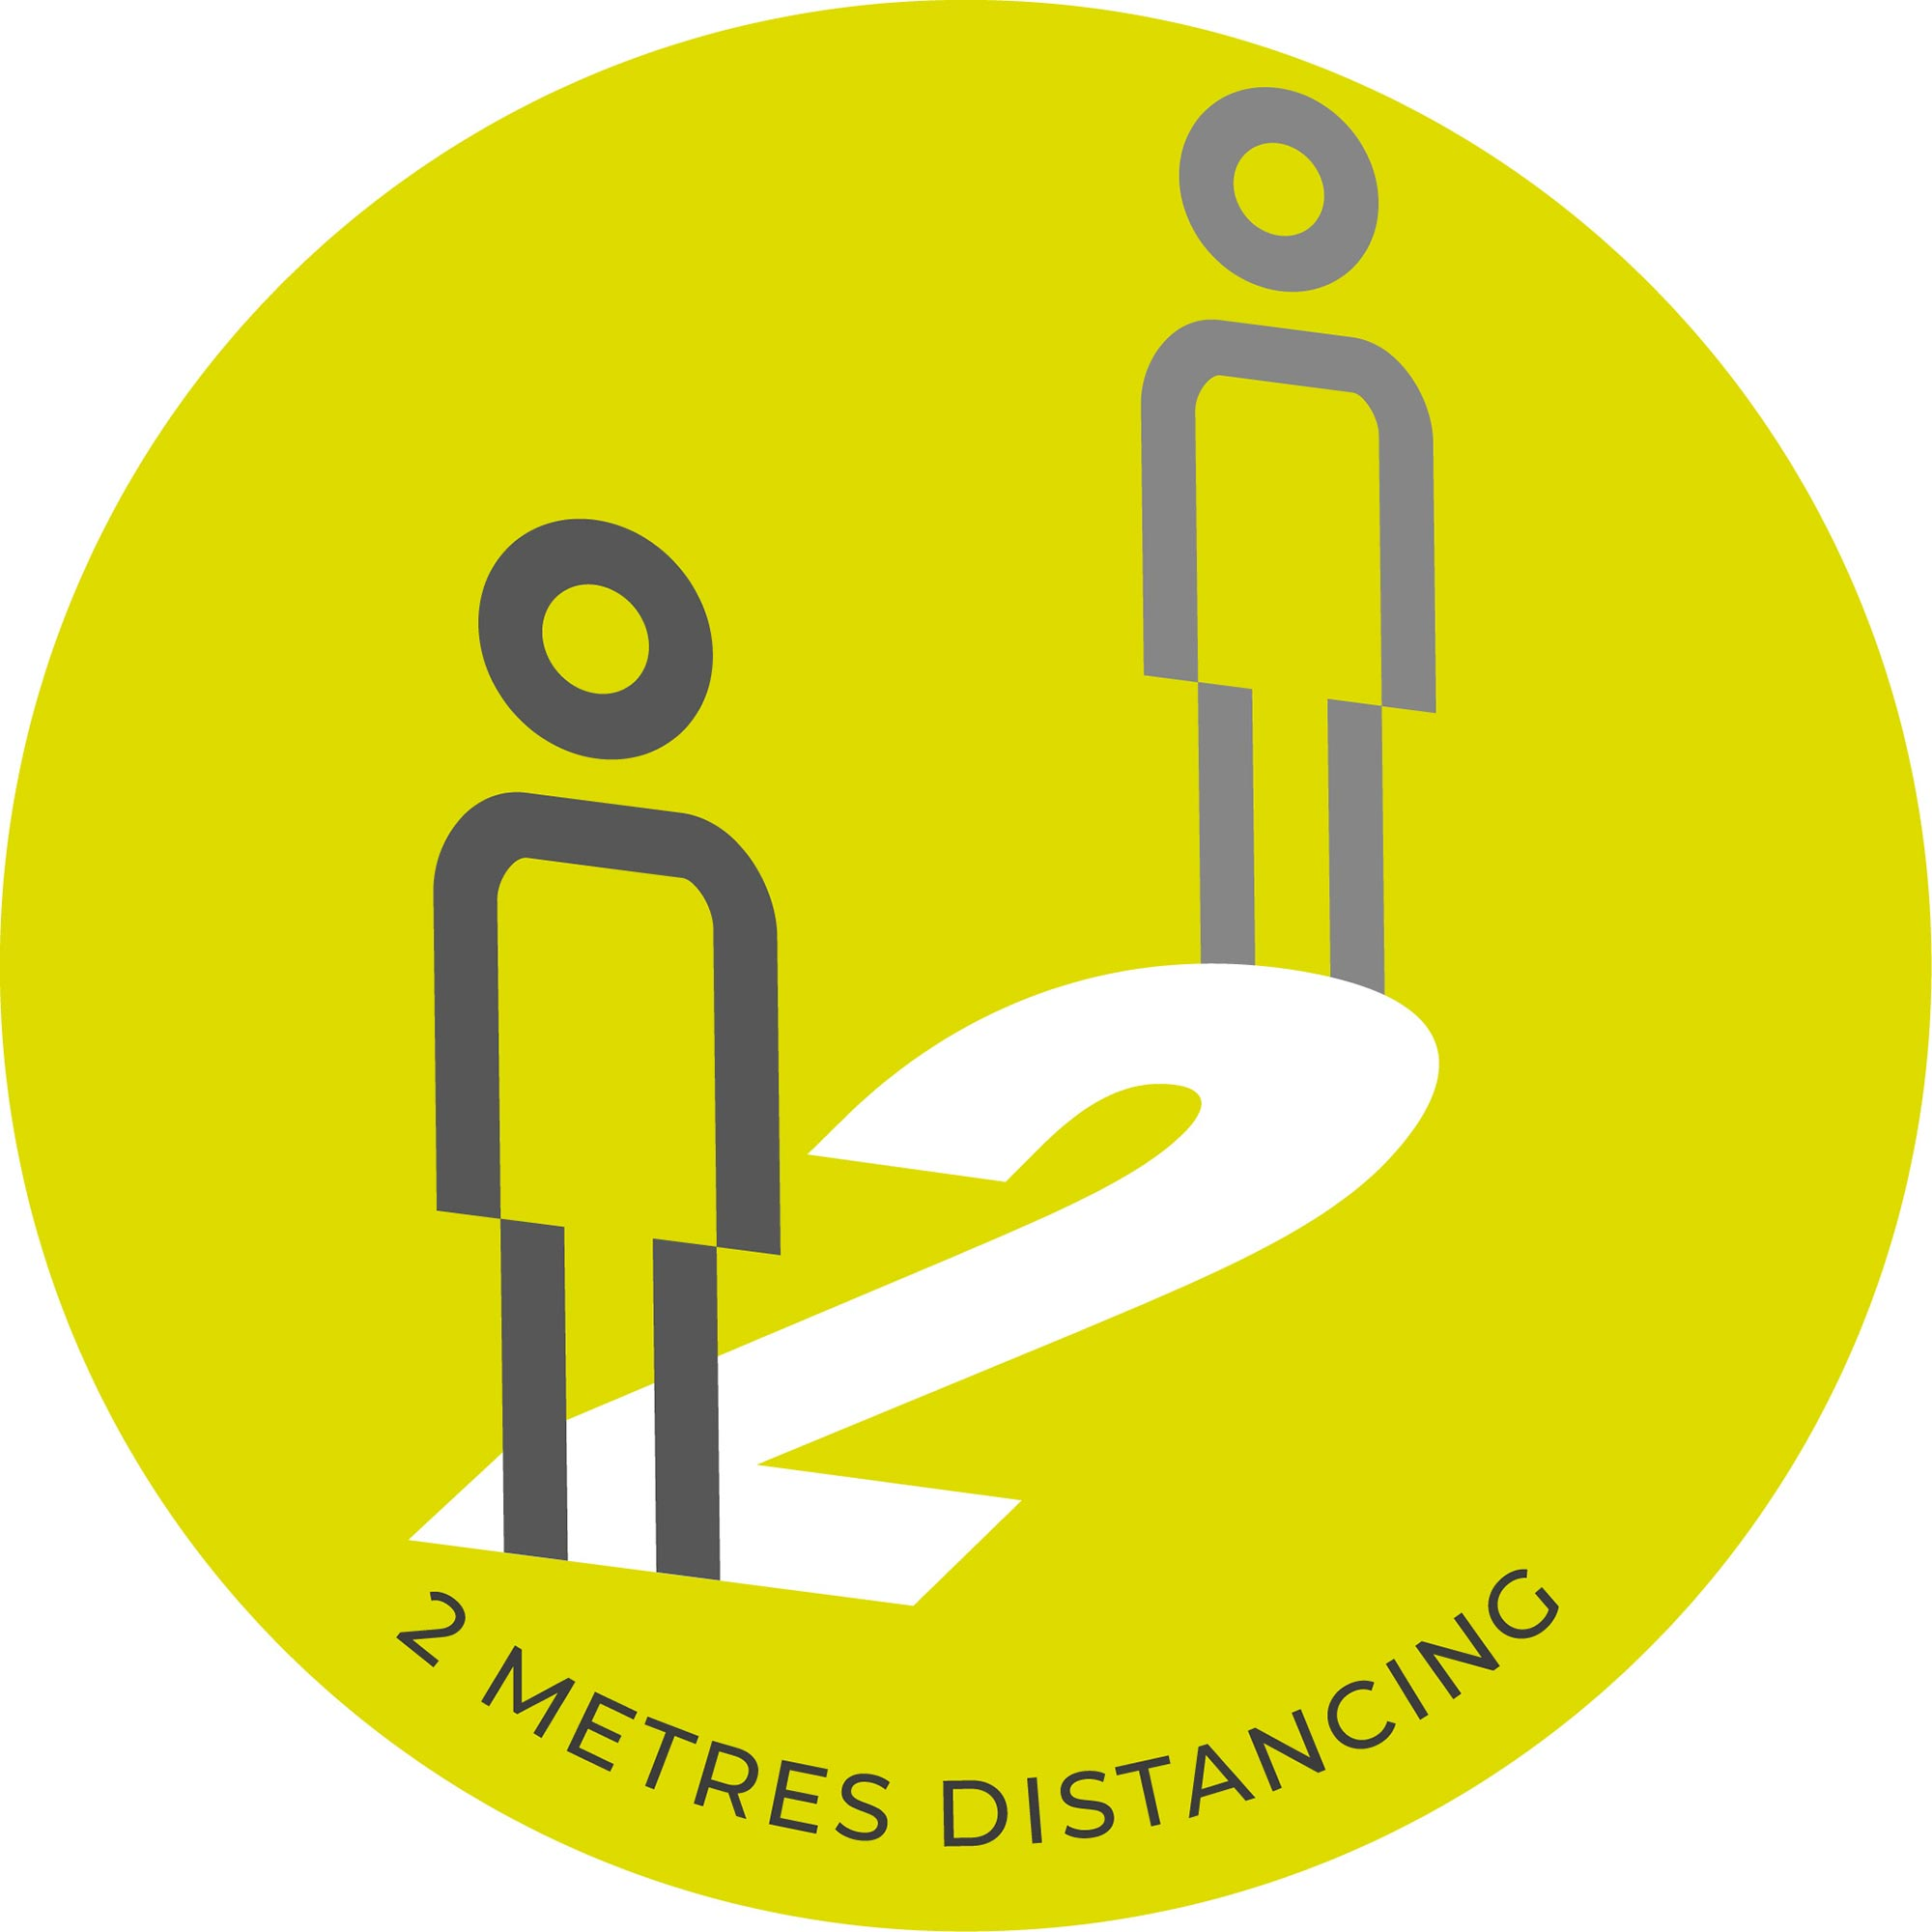 2 Metre Distancing  - Green Sticker